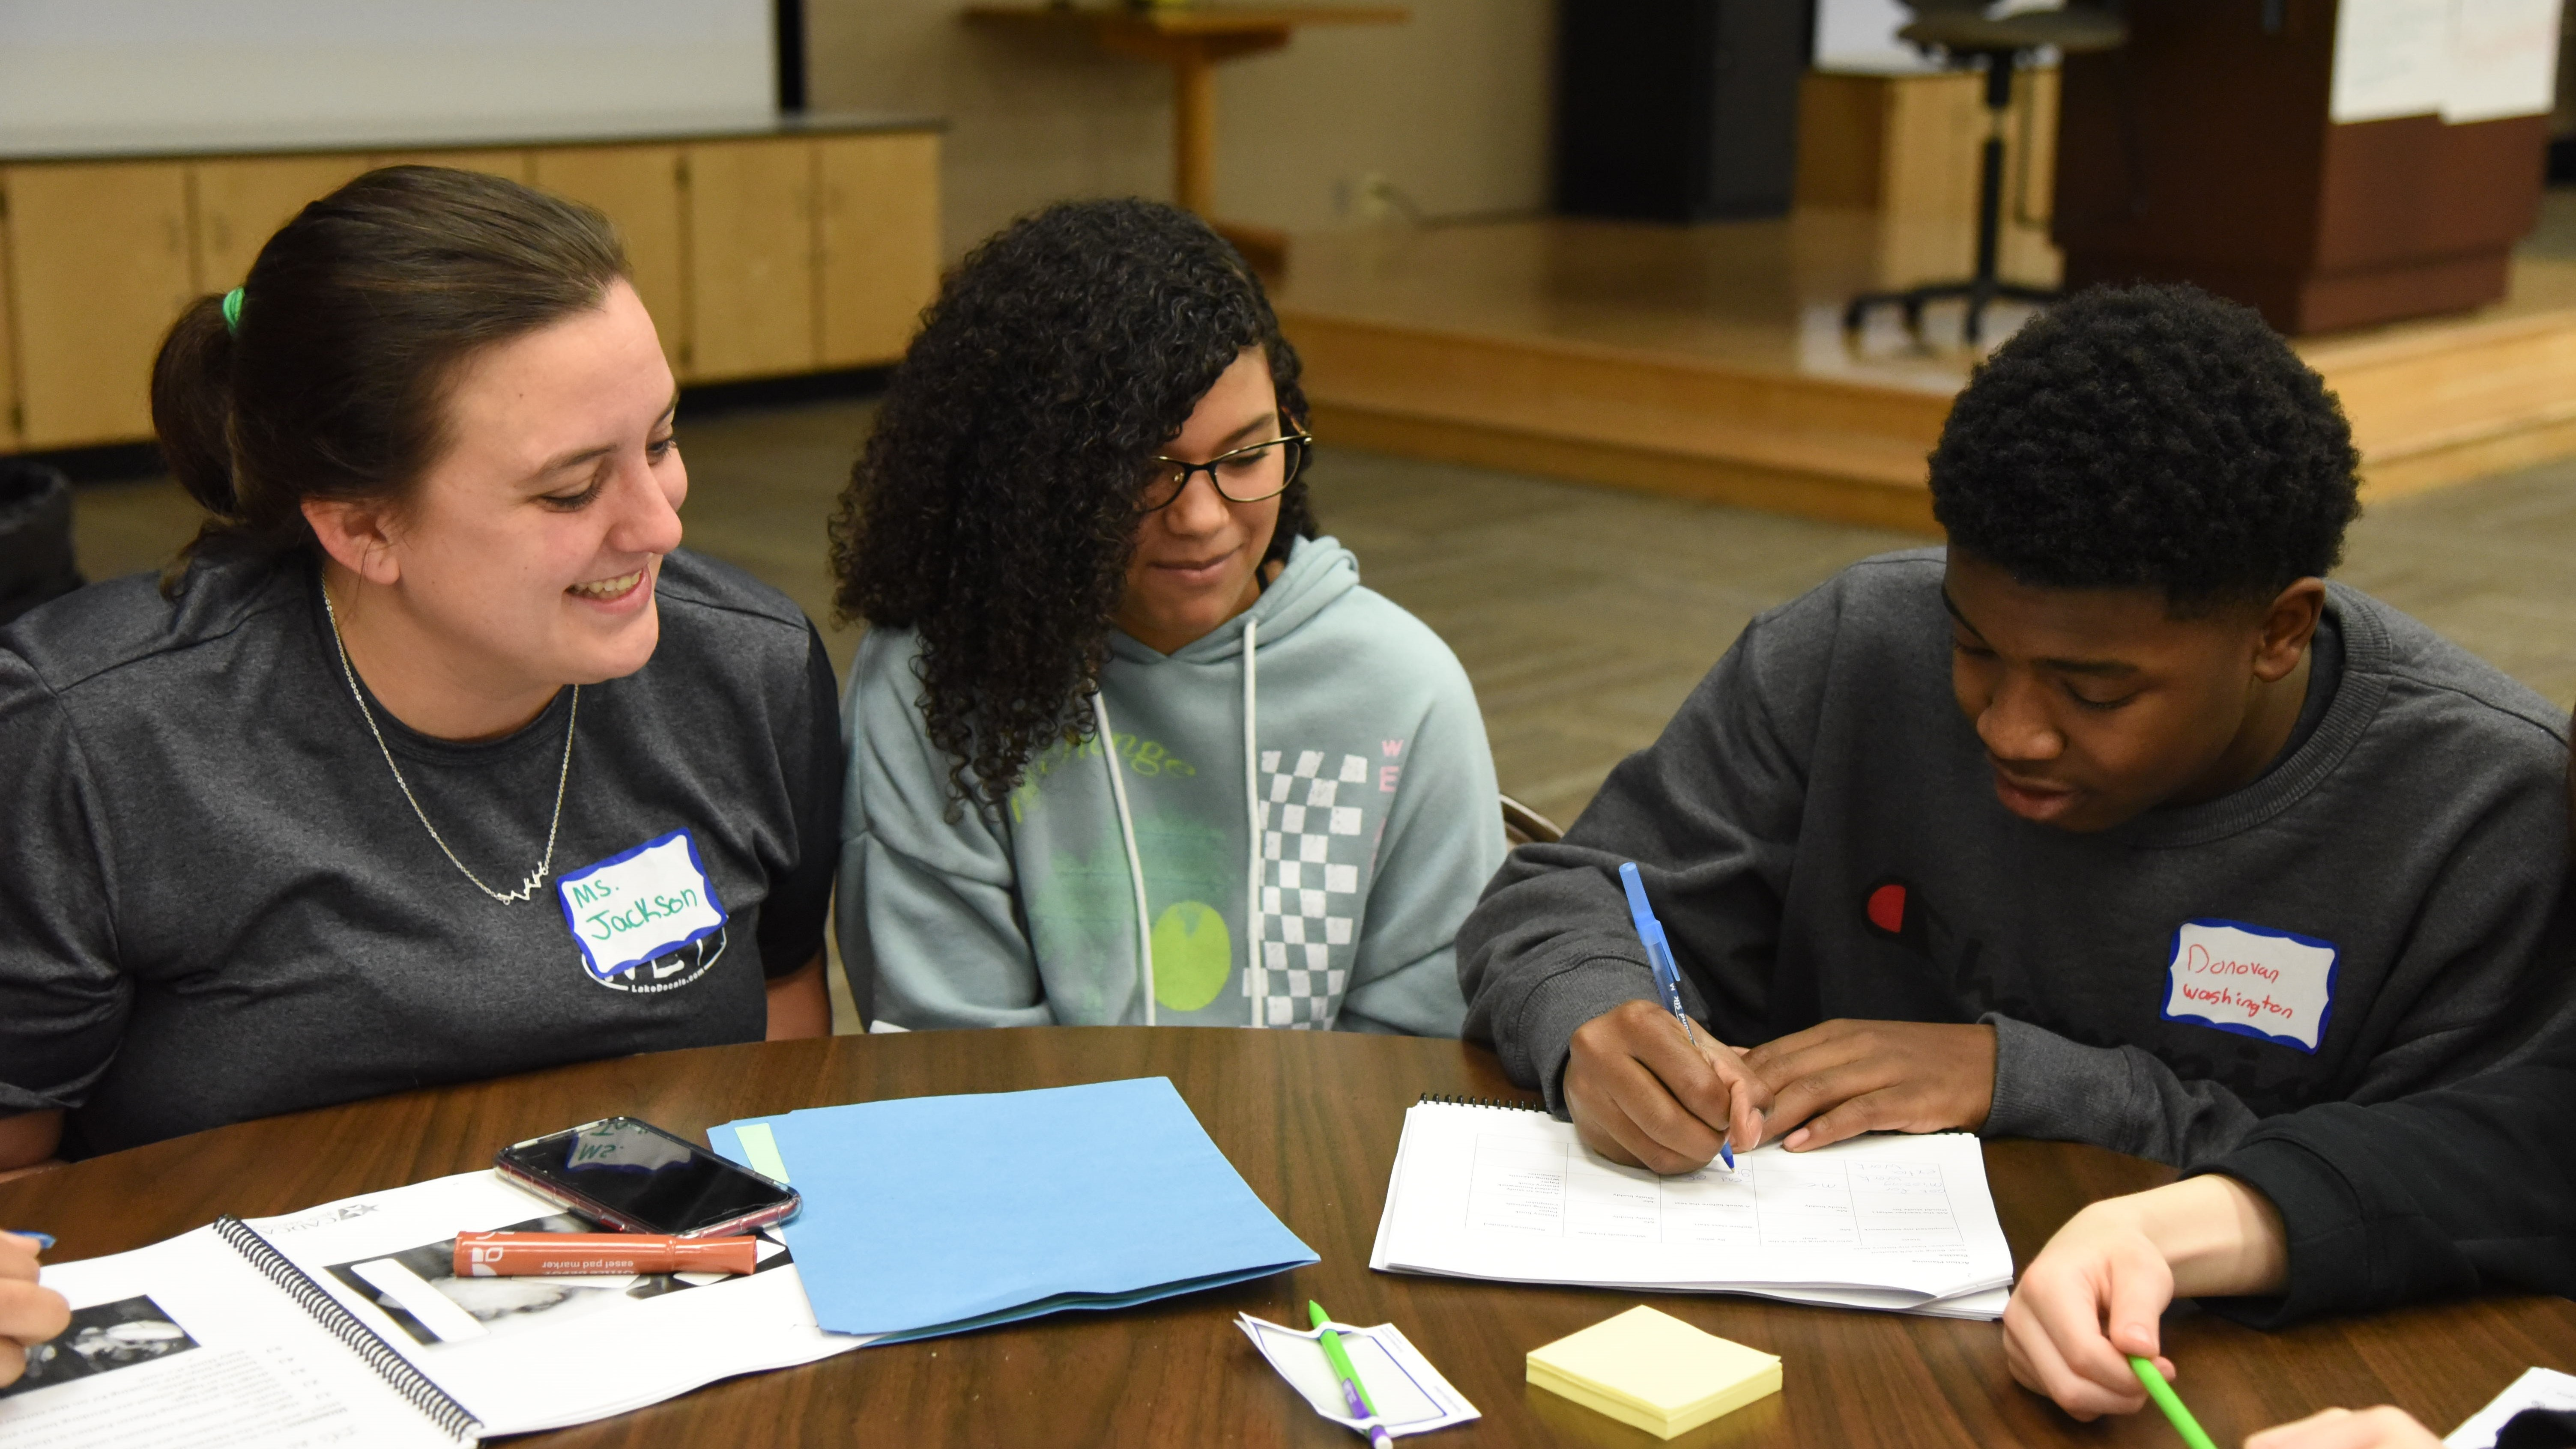 Madelyn Jackson, a guidance counselor at Holston Middle School, works with 7th-grader Savanah Brooks and 8th-grader Donovan Washington during a Vaping Prevention Summit on Jan. 9, 2020.